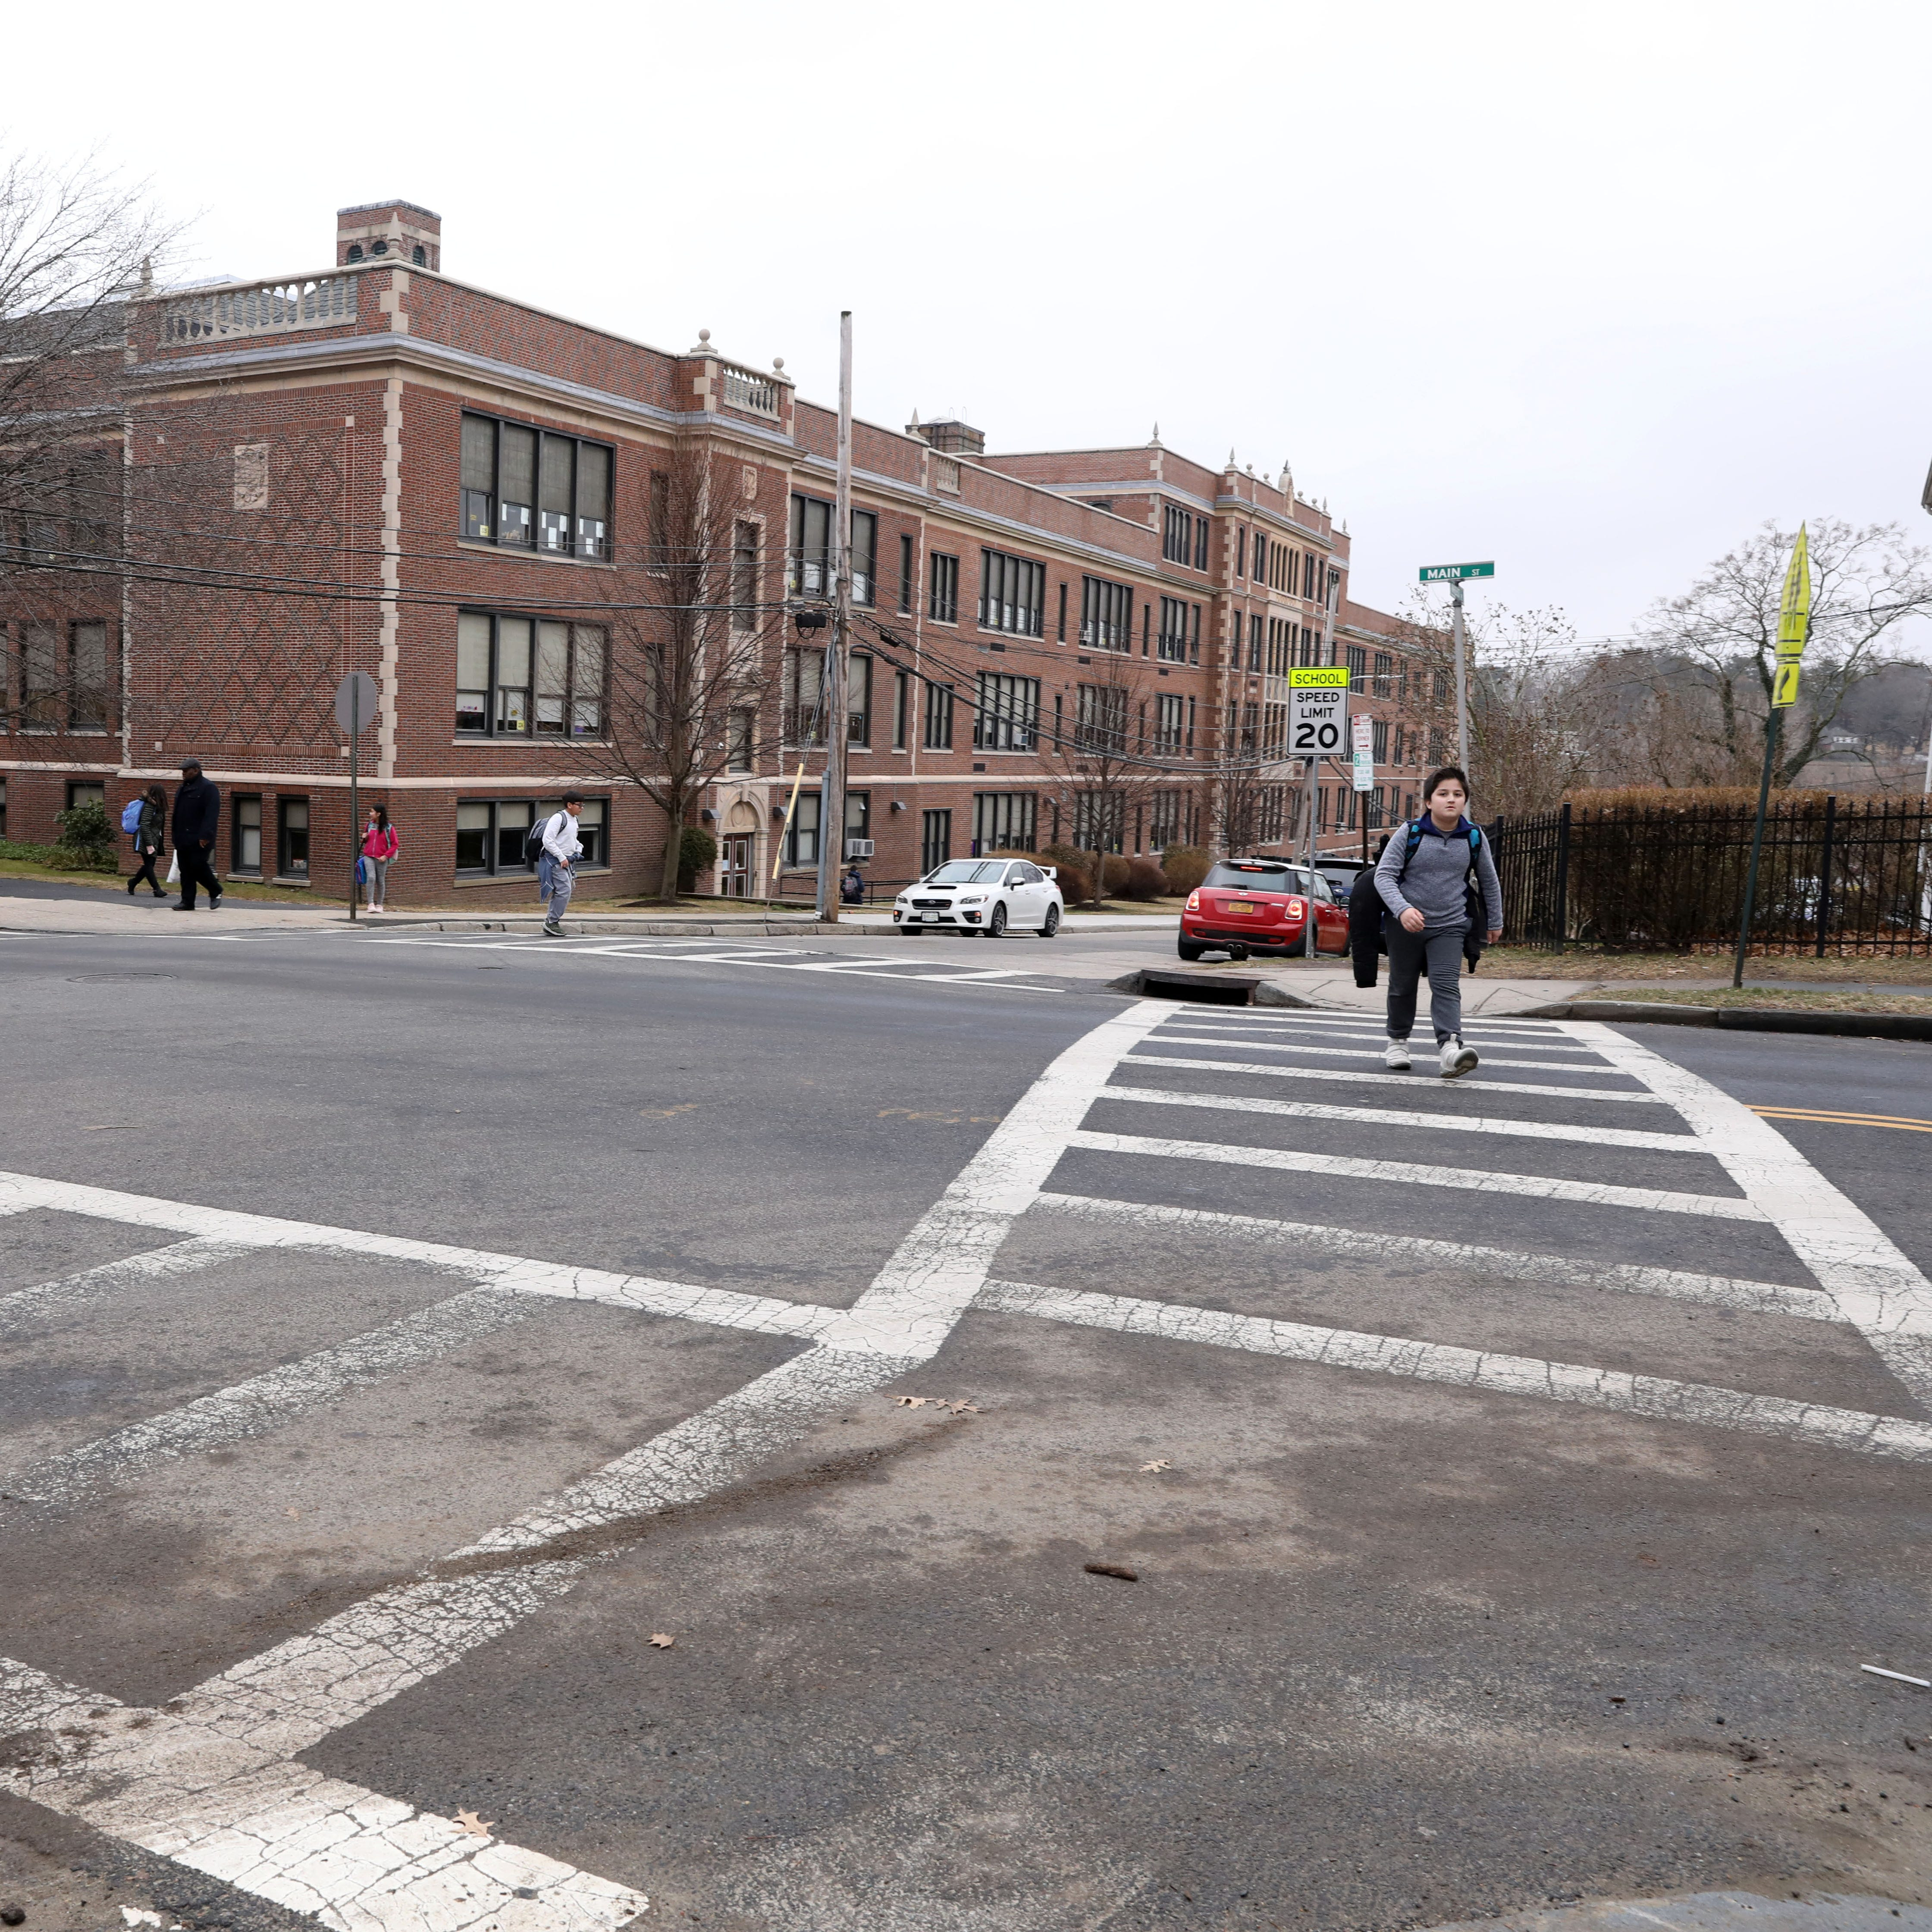 Sixth-grader struck by car at unguarded school crosswalk